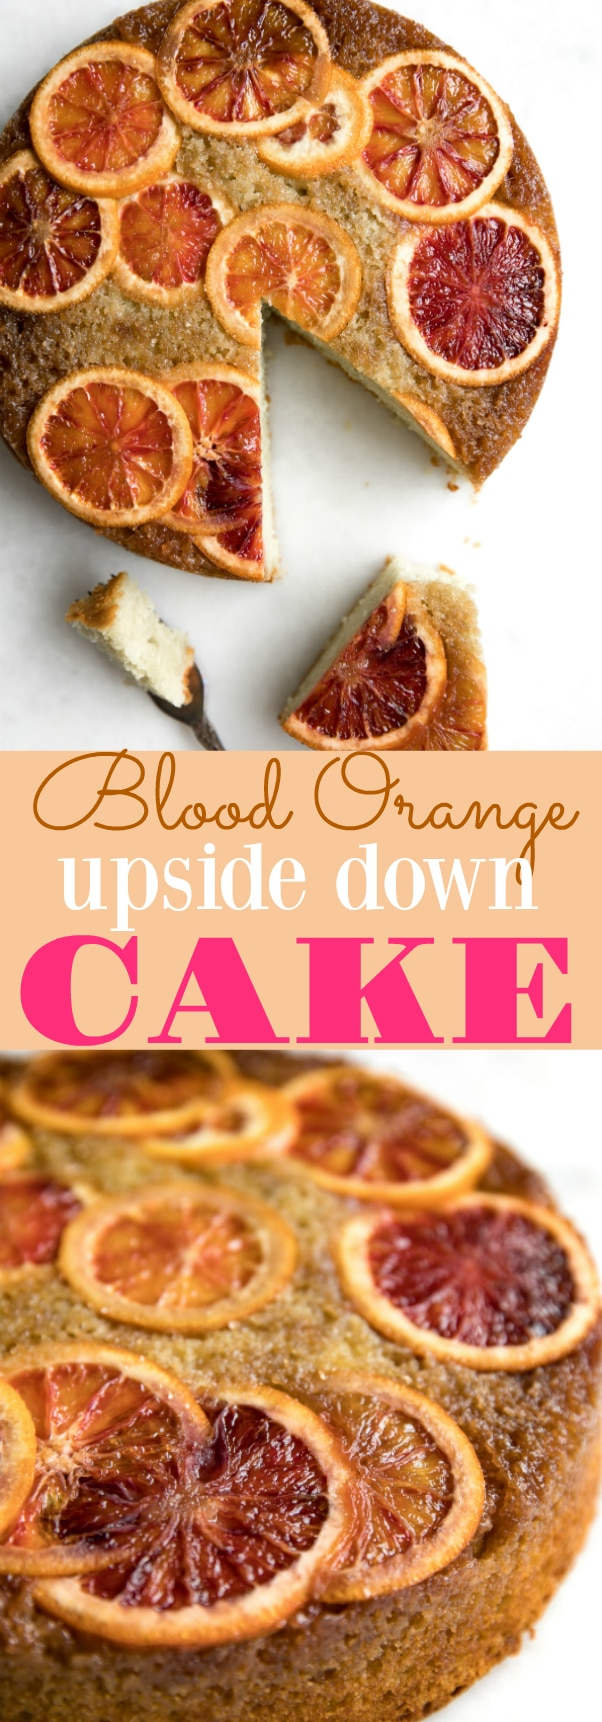 Blood Orange Upside Down Cake via @theforkedspoon Just 10 minutes prep time and this beauty will be ready to bake! #cake #buttermilkcake #easycake #recipe #bloodoranges #oranges #dessert #birthday